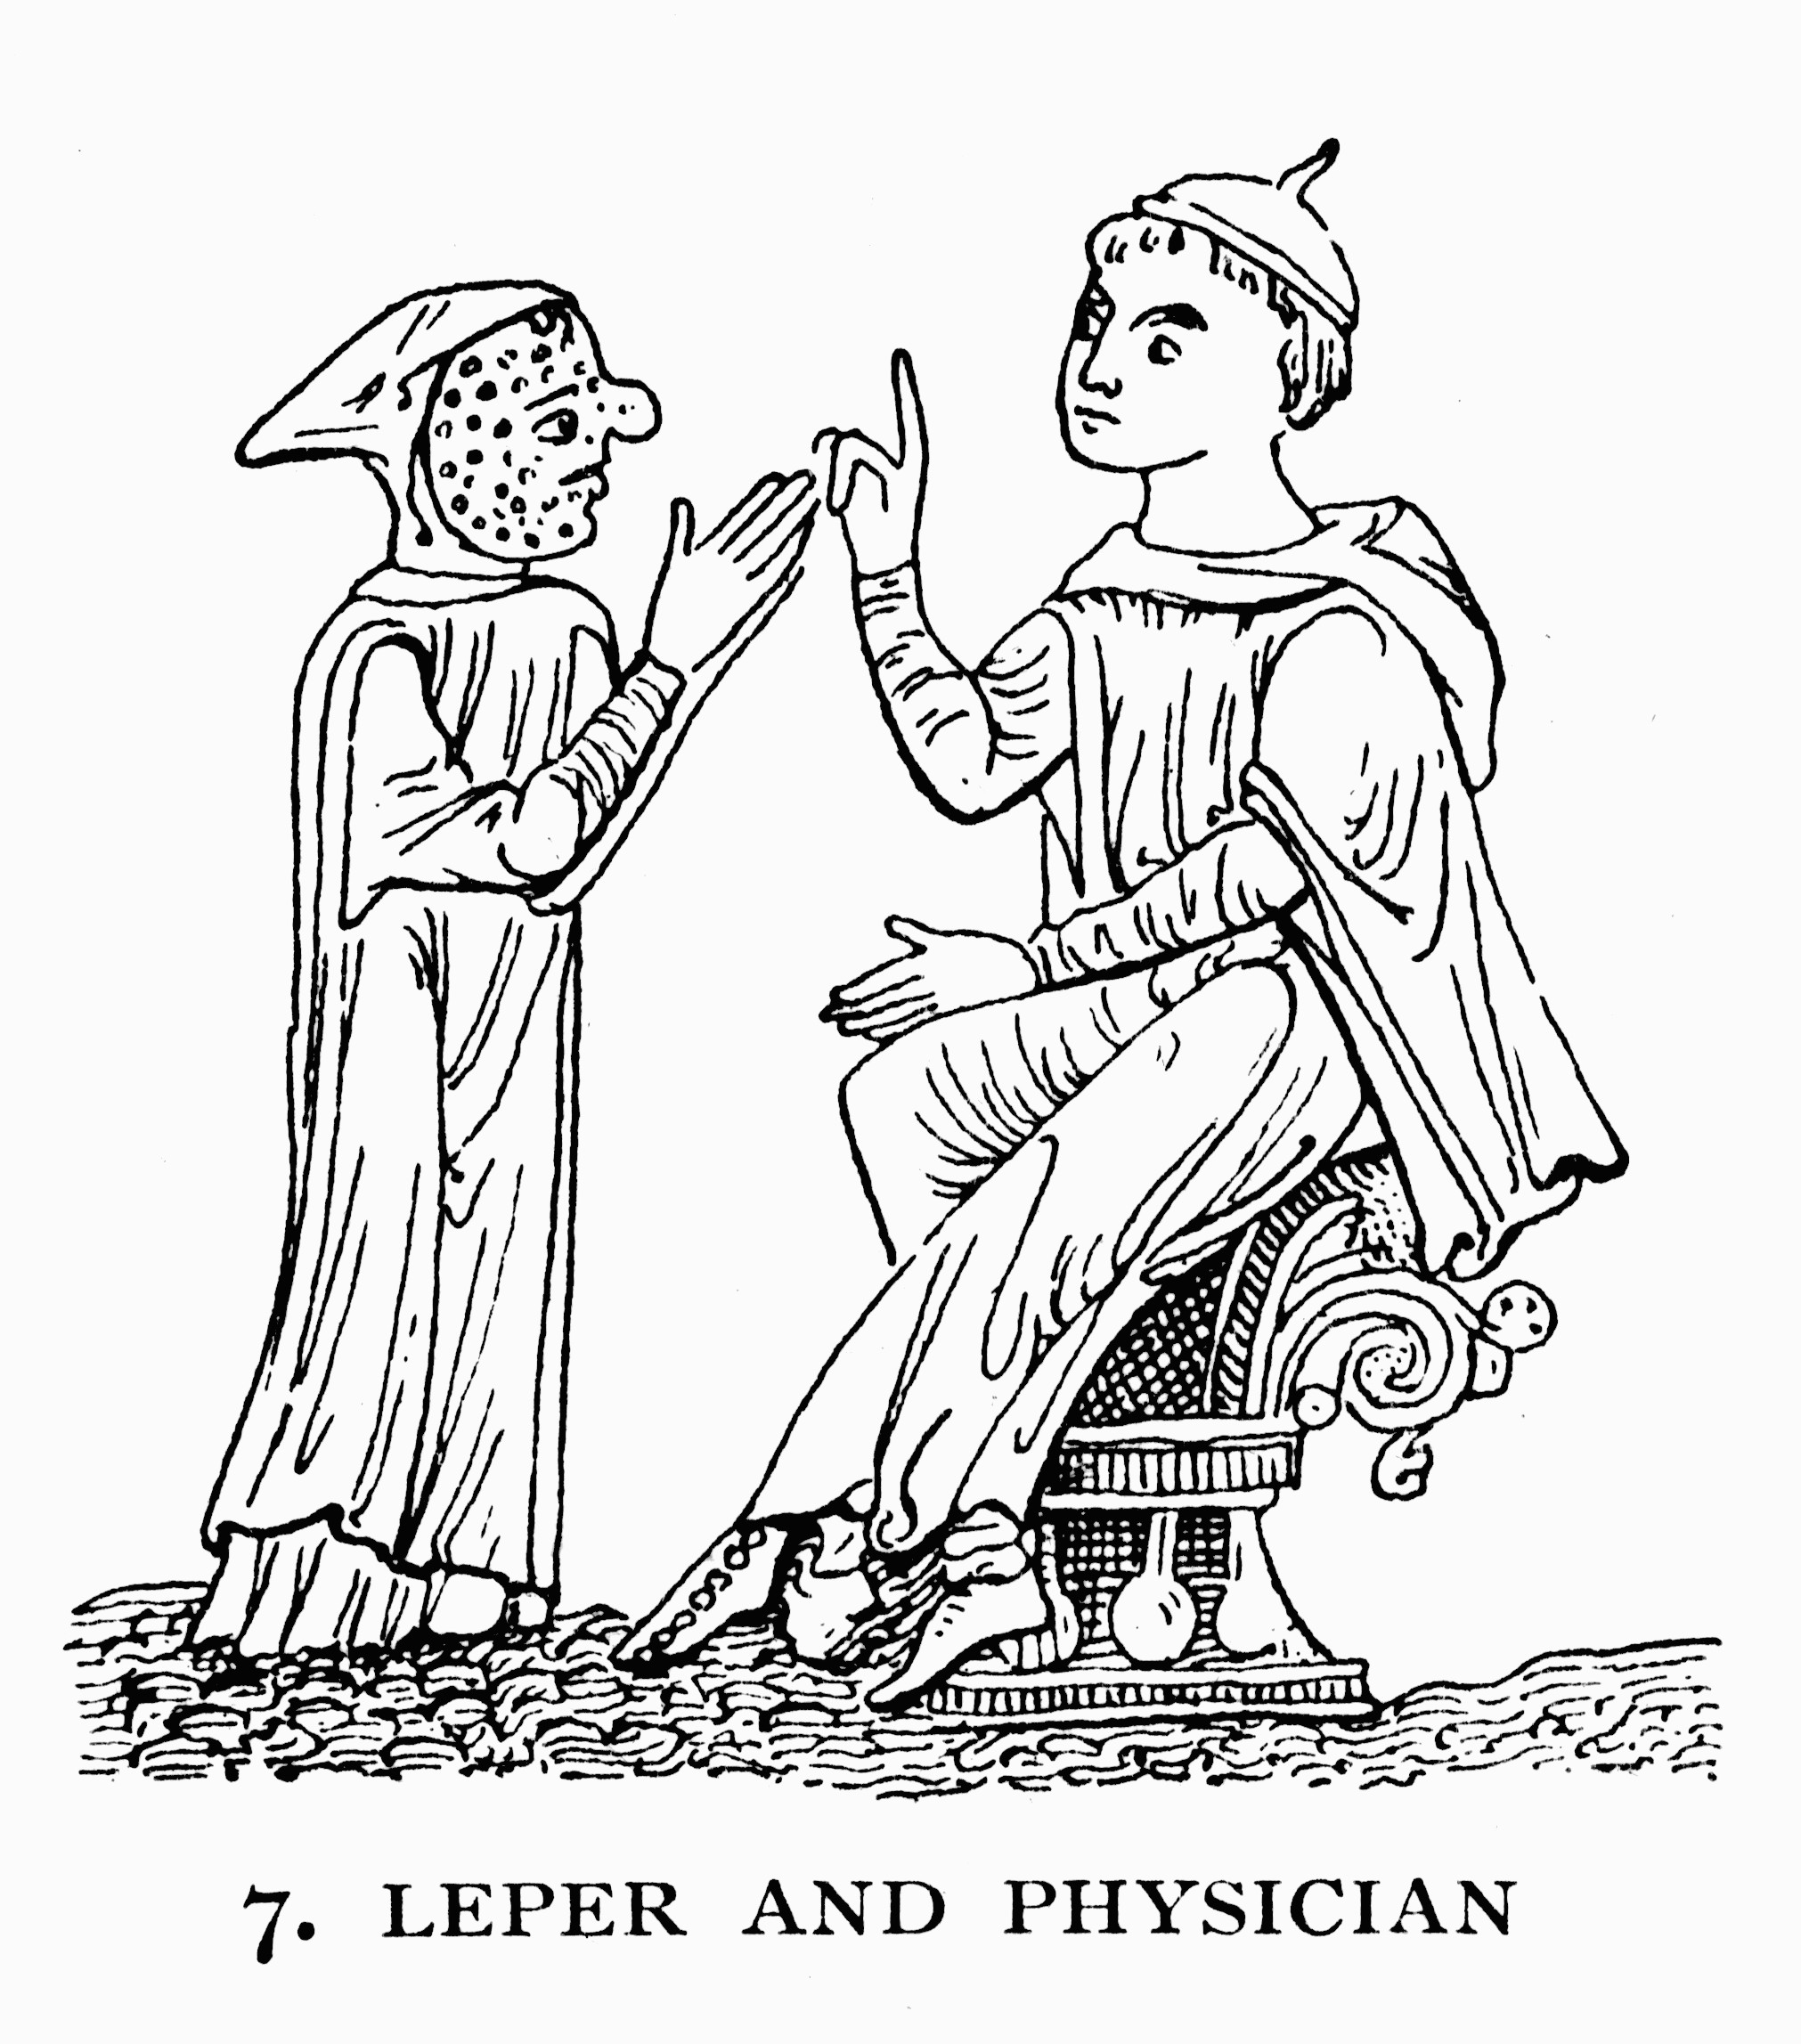 Expulsion of a leper (City of London letter-book, 1372